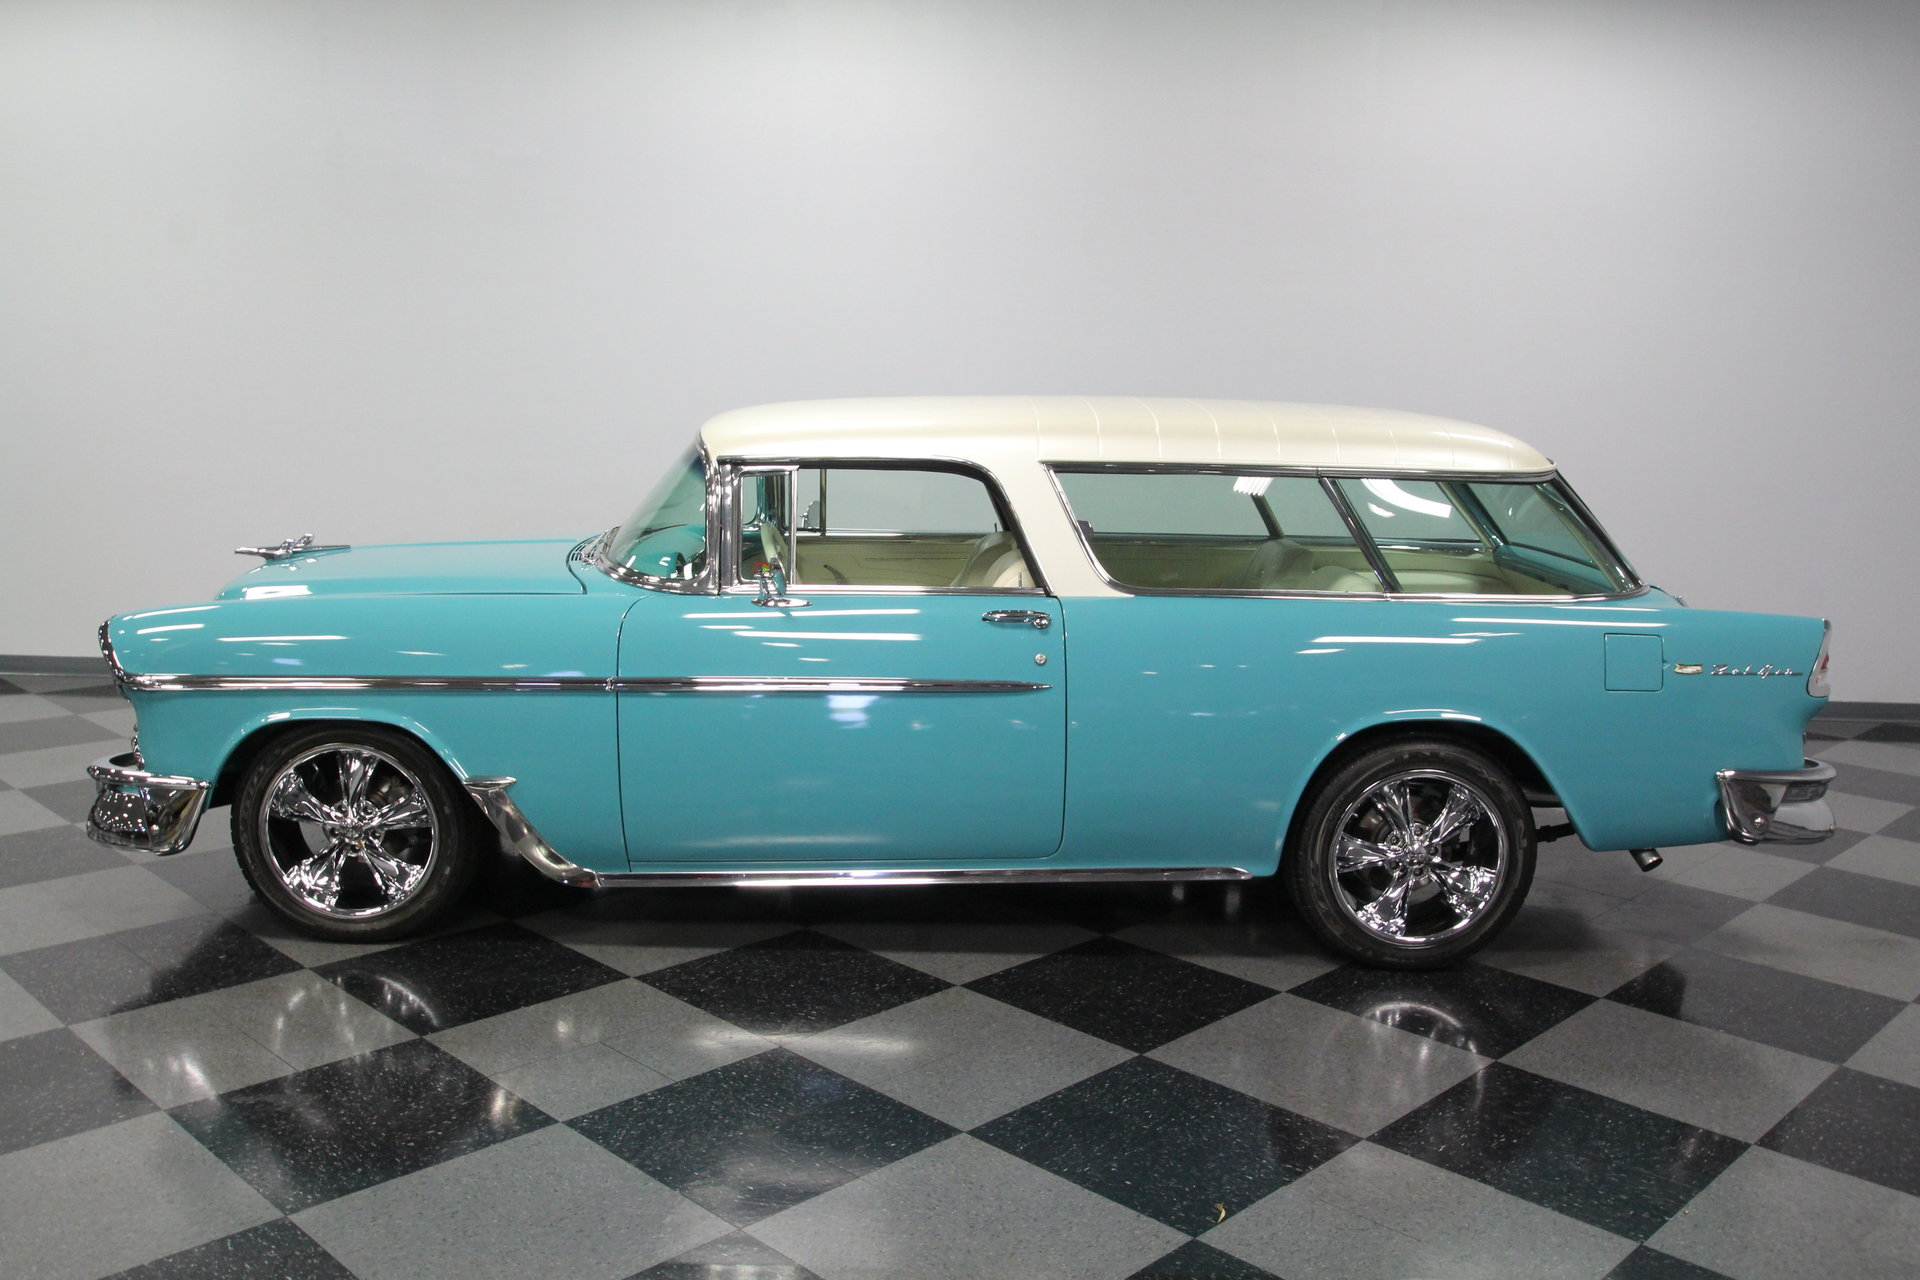 1957 Chevrolet Bel Air Streetside Classics The Nations Trusted Chevy Station Wagon Show More Photos